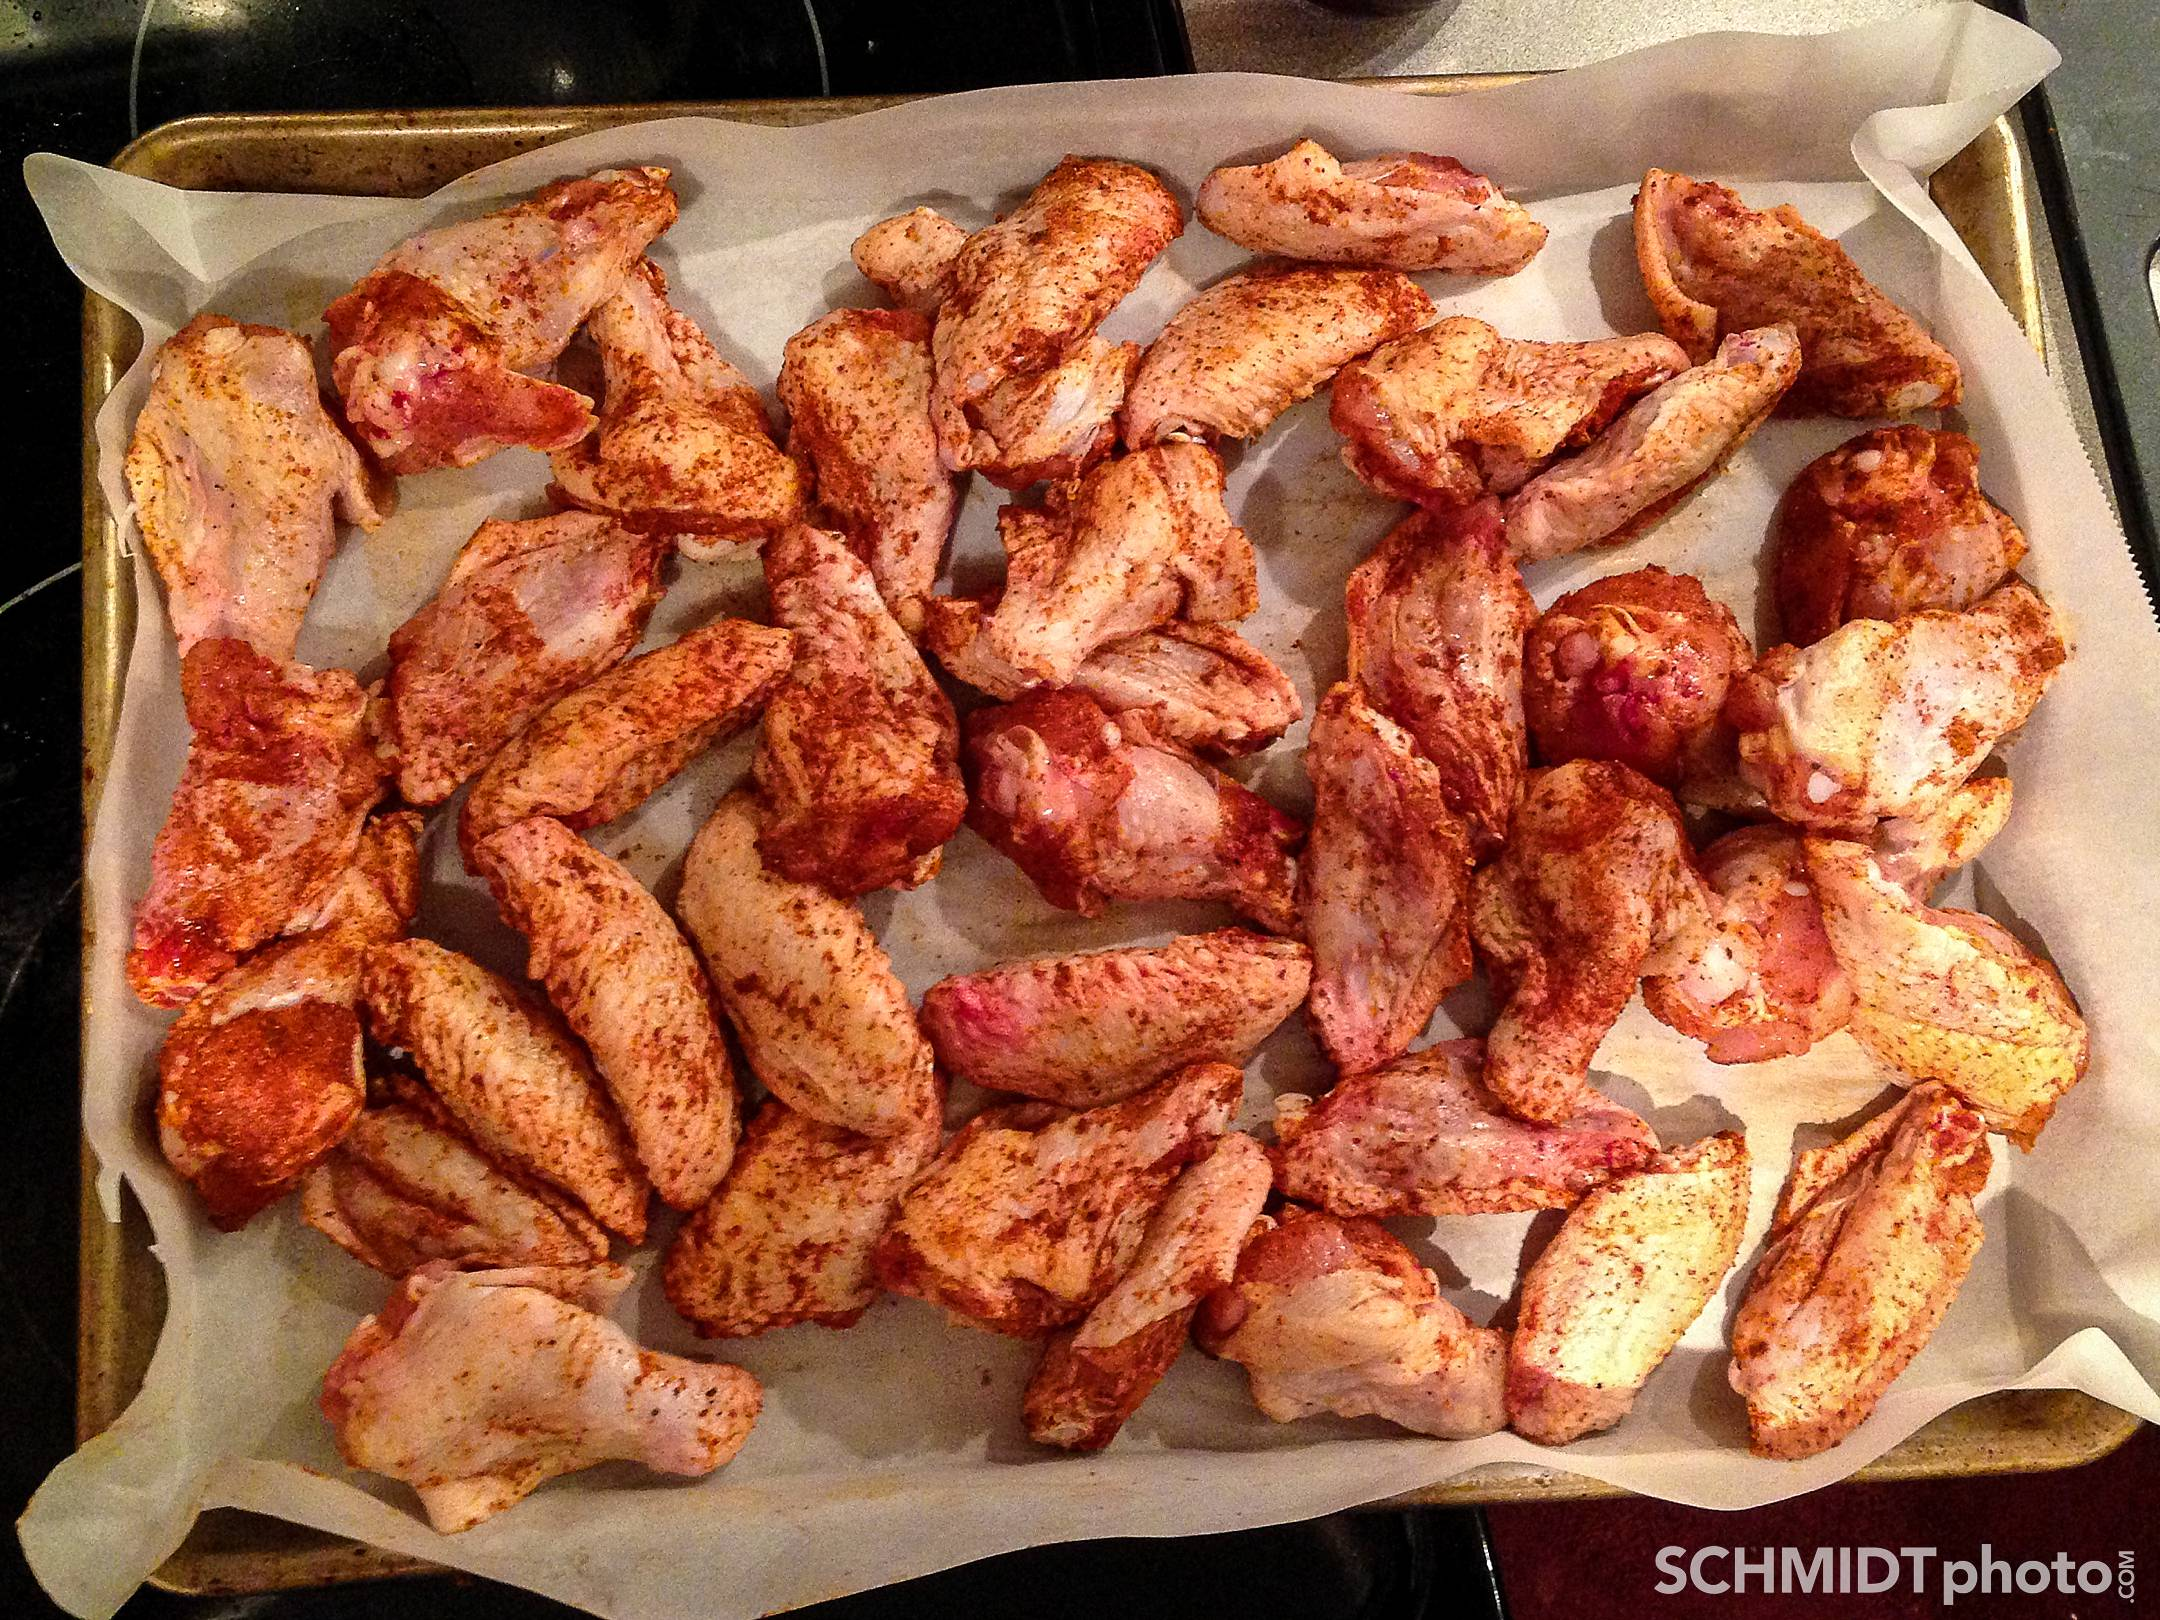 chicken hot wings oven roasted tom schmidt photo